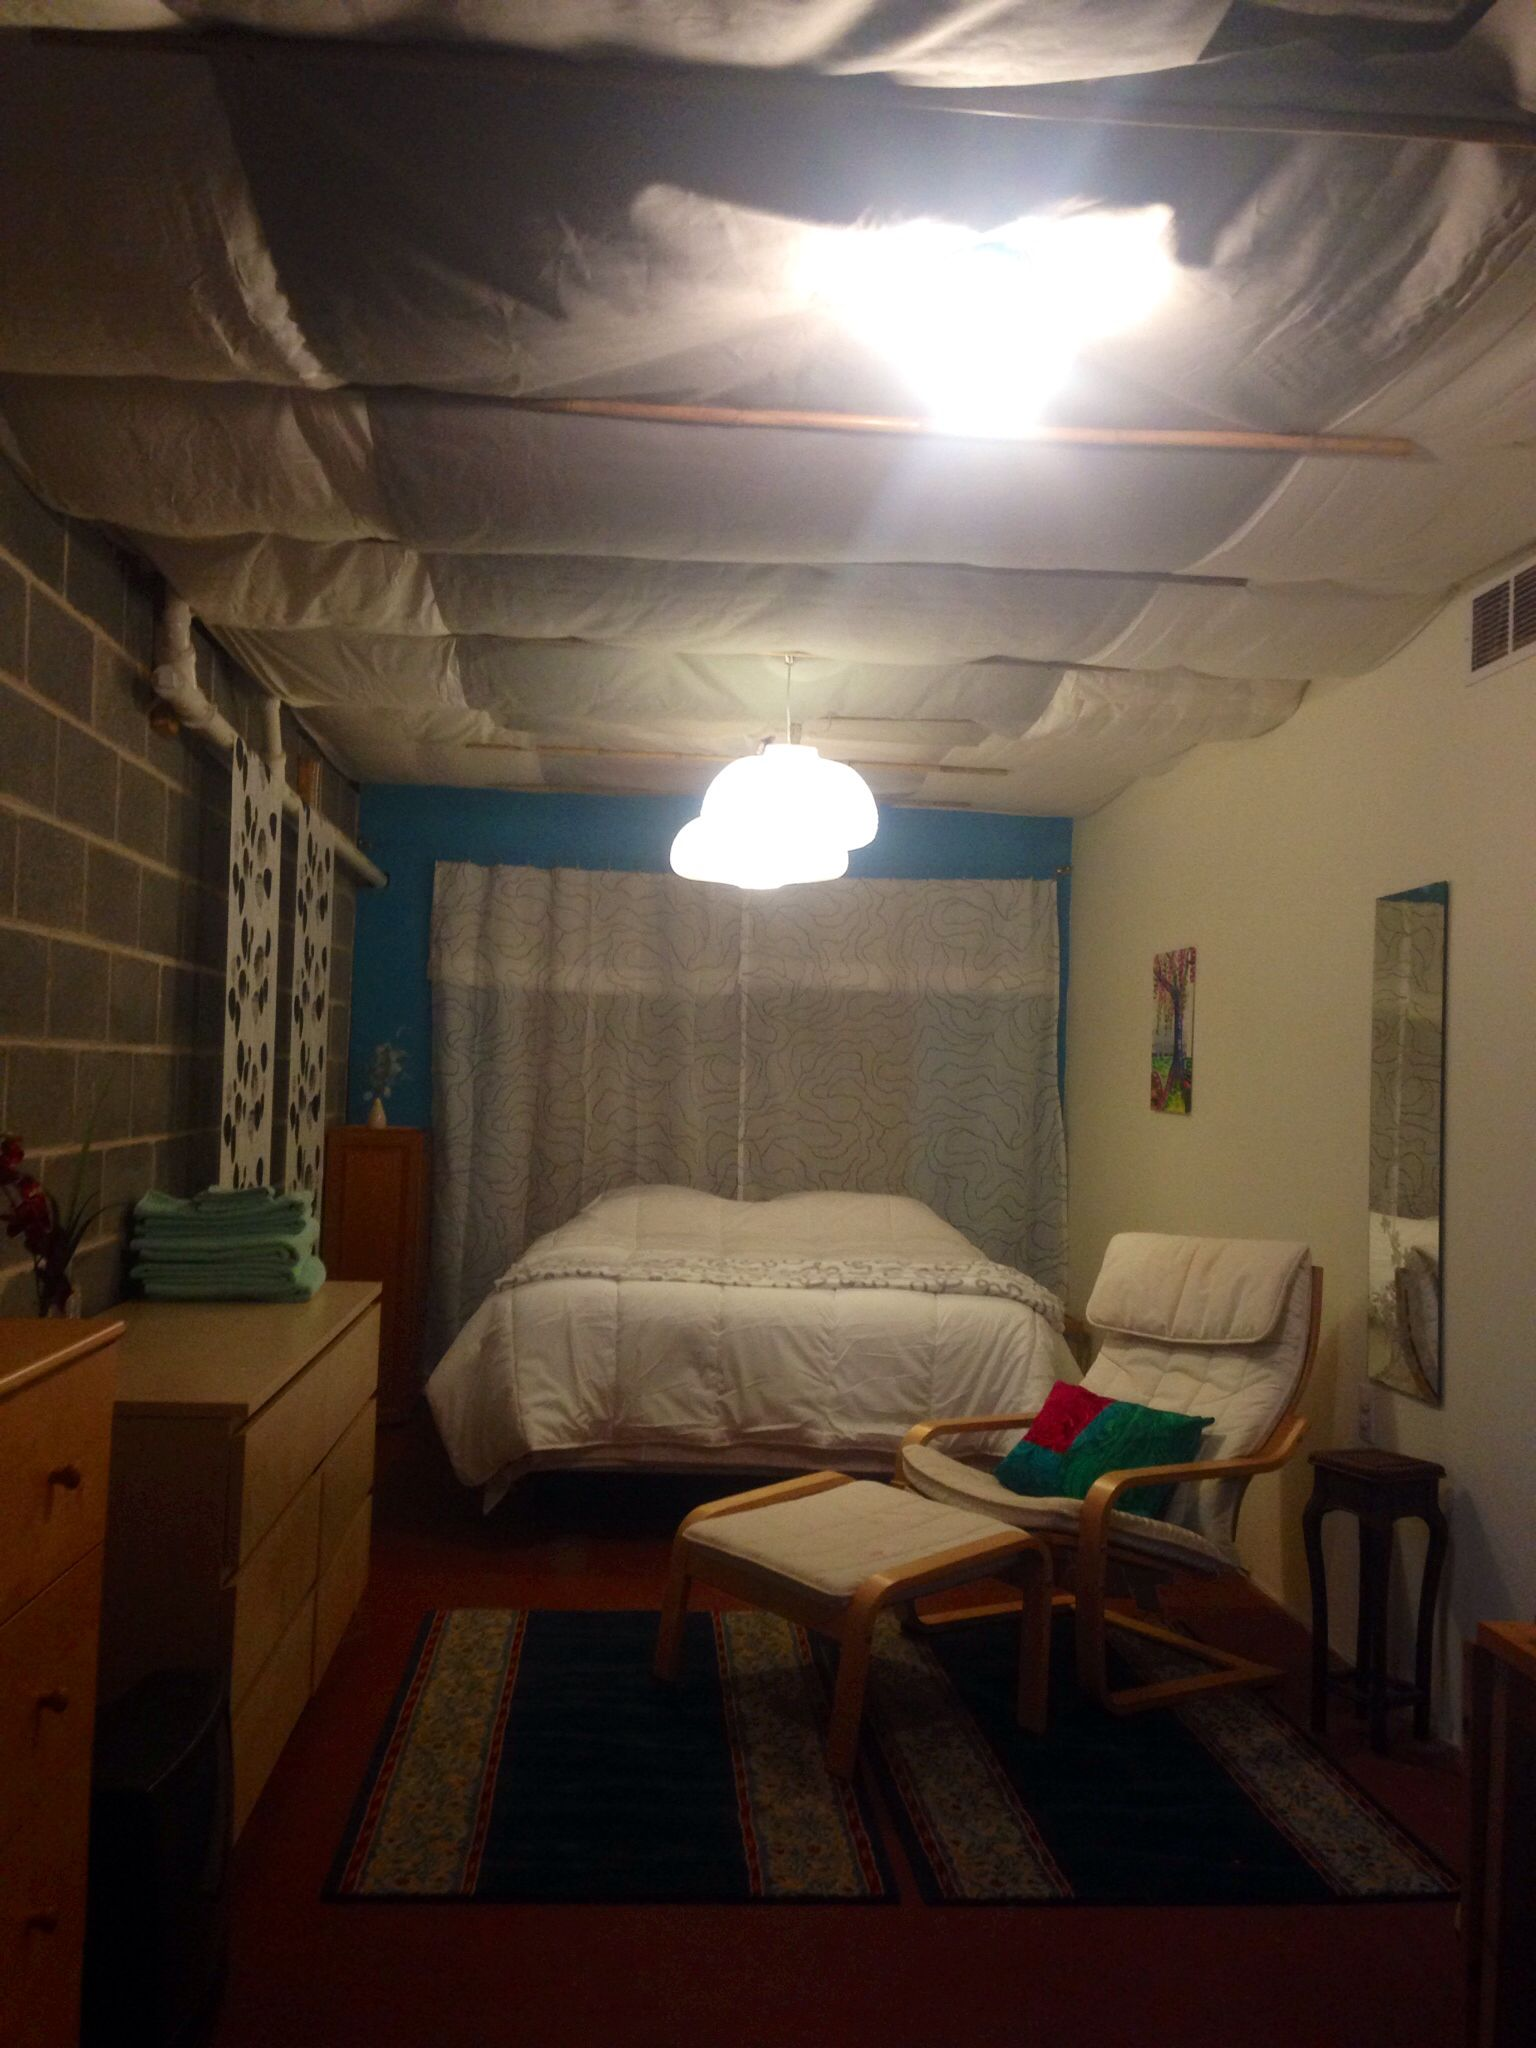 Diy Basement Ceiling Cover With Sheets And Staple To